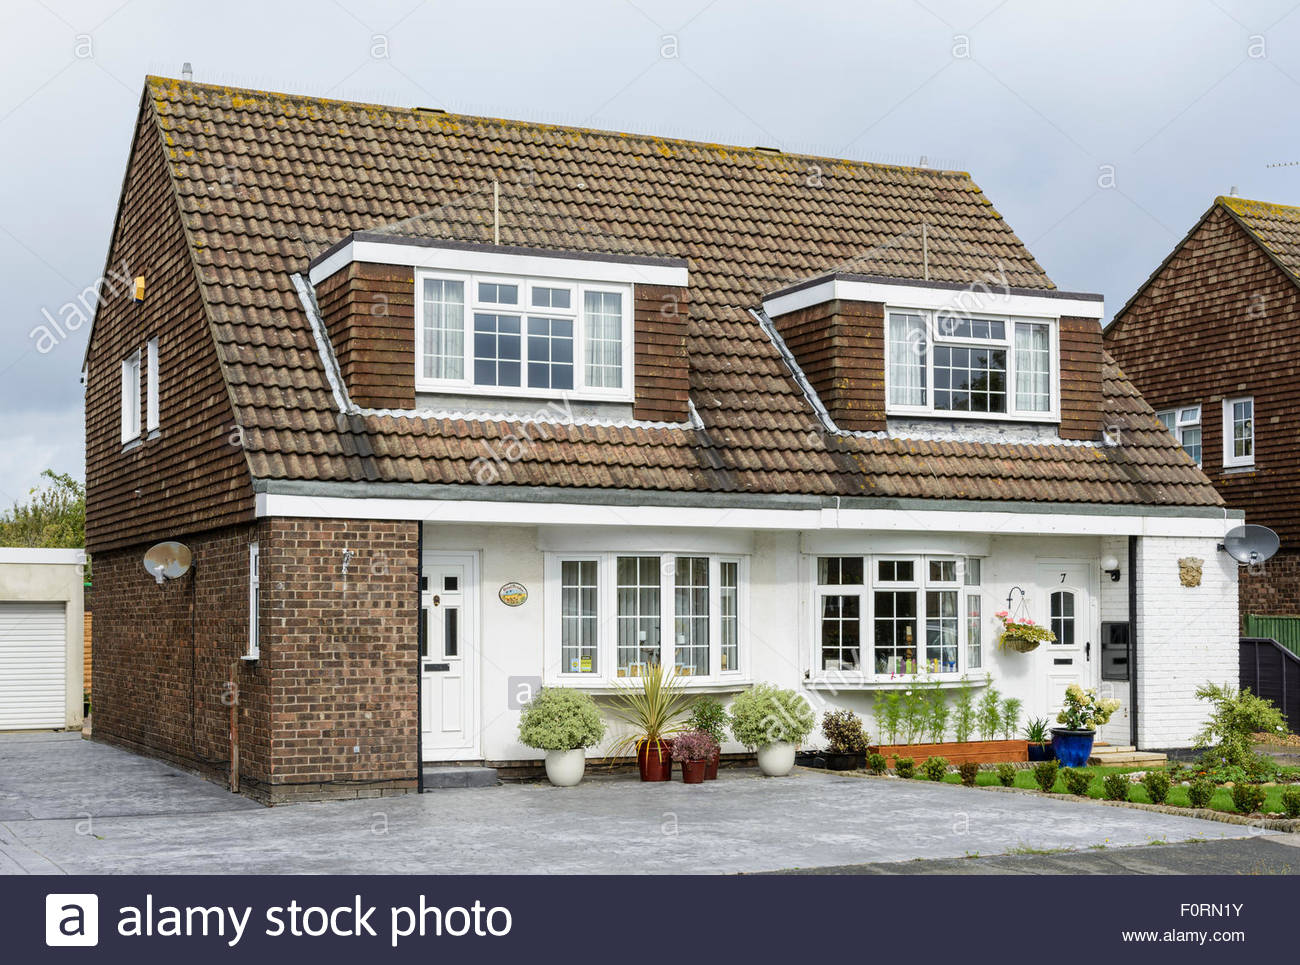 Dormer Windows On A Semi Detached House In England UK